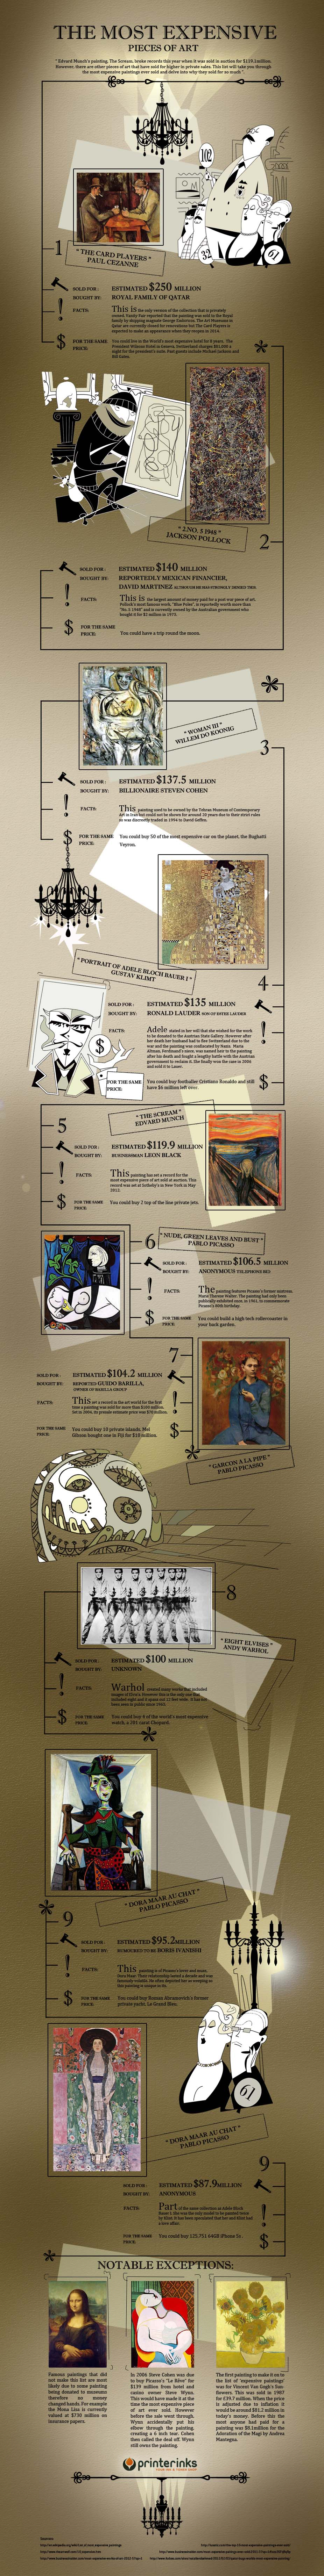 Most Expensive and Popular Art Pieces